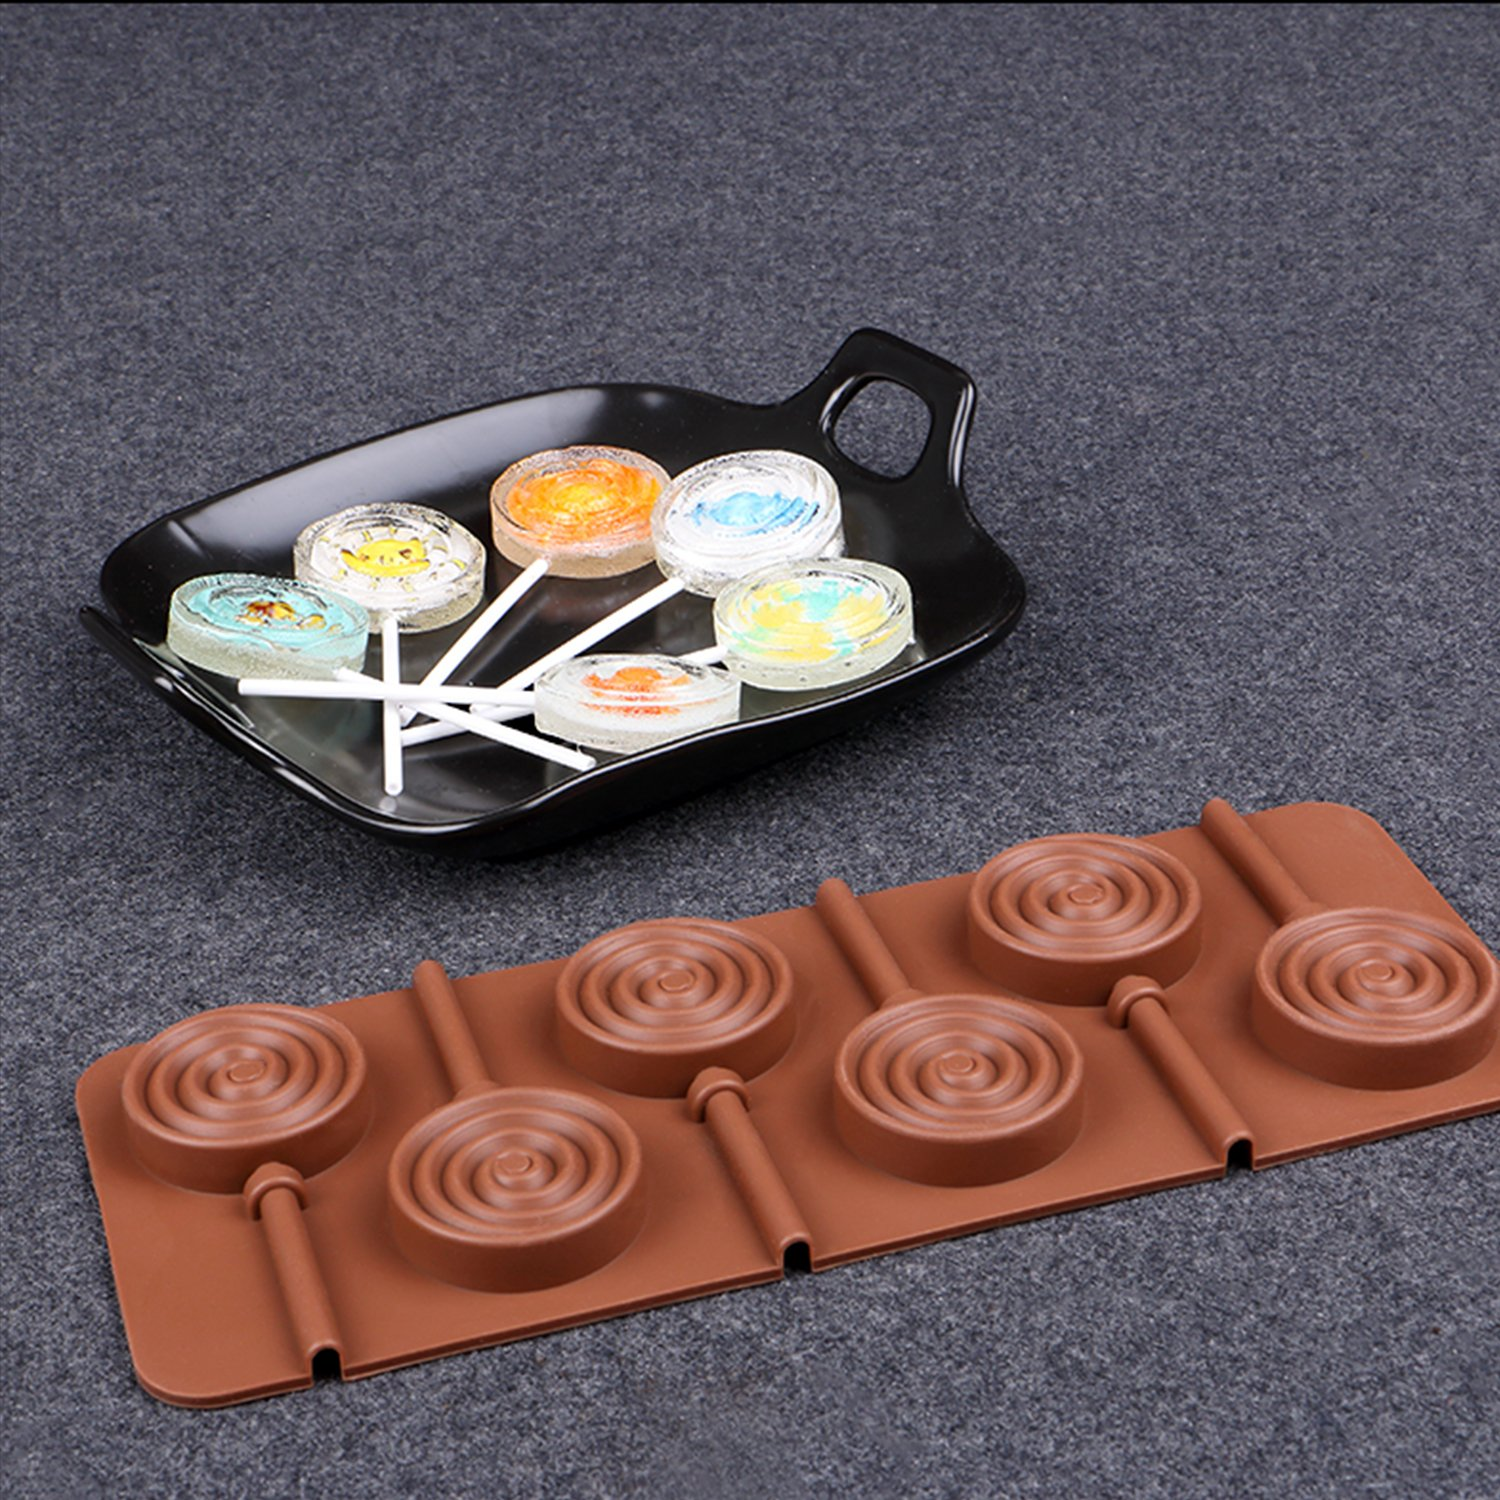 Silicone Chocolate Molds Set of 6 NonStick BPA Free Baking Candy Molds